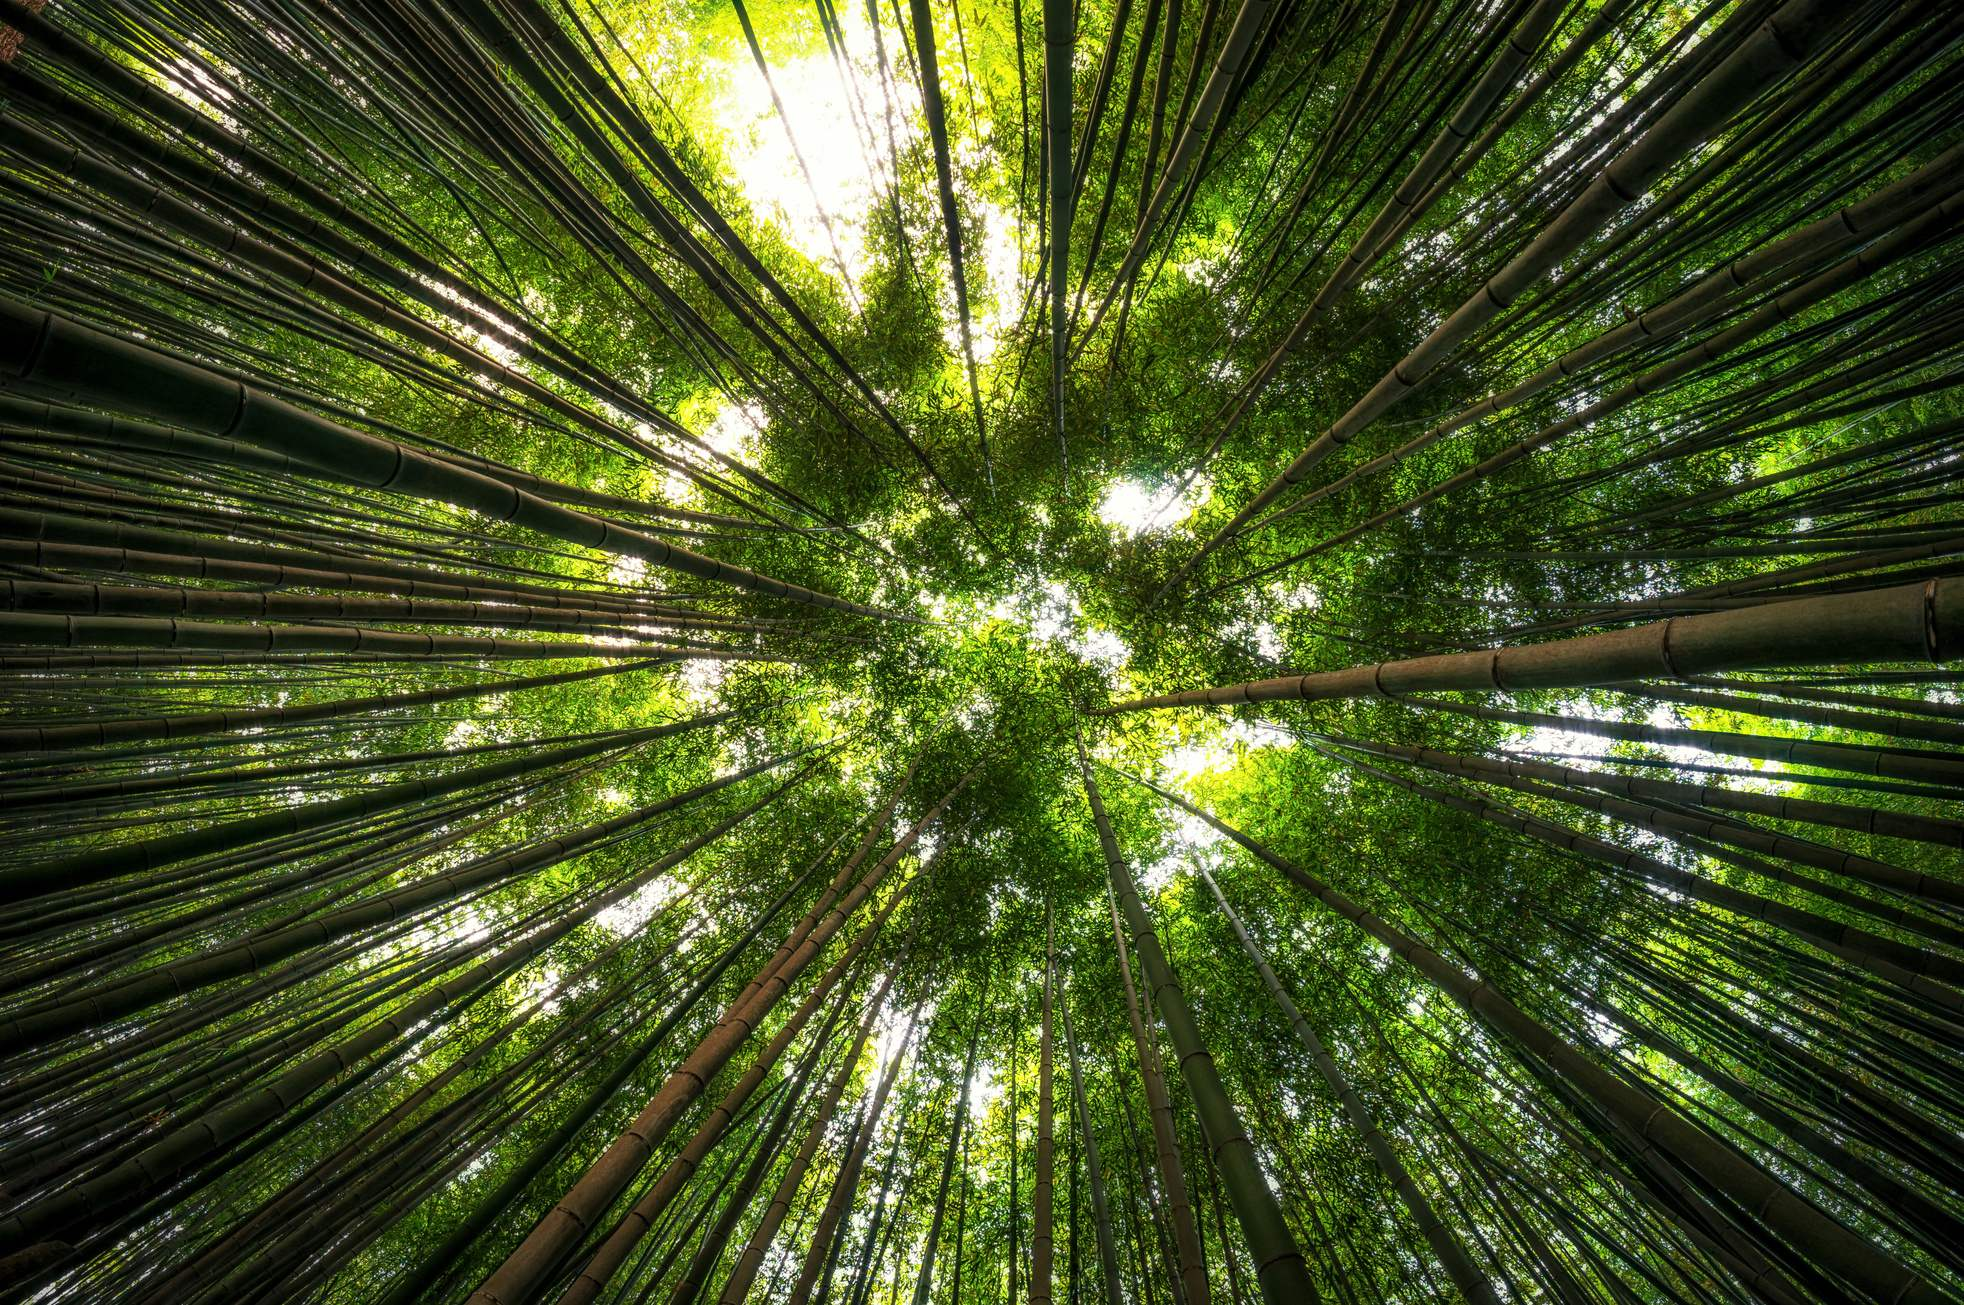 Bamboo Industry - Hypnotized